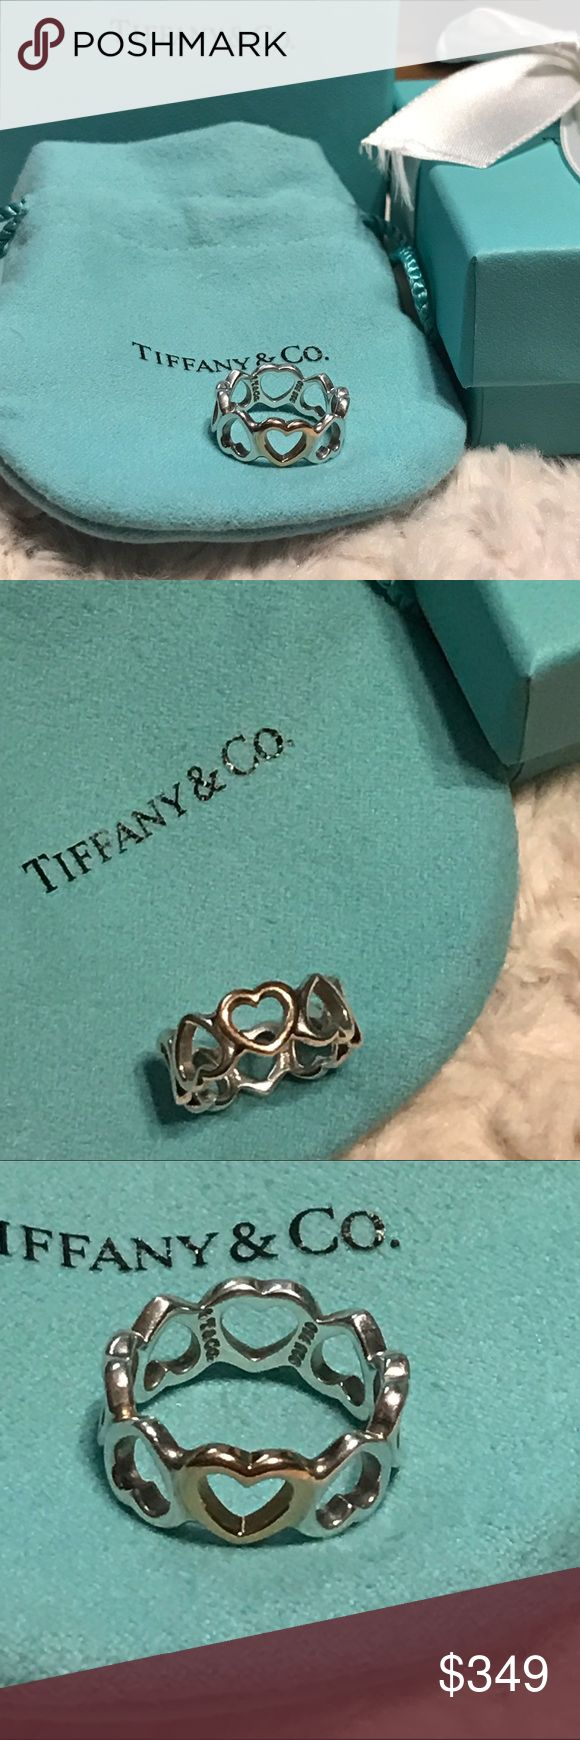 TIFFANY Heart Ring SZ 4 Valentines Gift AUTHENTIC NWOT AUTHENTIC 💯 Tiffany & CO Sterling Silver 18K Rose Gold Heart Ring Size 4 -1 heart is rose gold. Others are Sterling Silver which makes it very versatile because you can wear with any piece of jewelry  100000% AUTHENTIC & fully hallmarked.   GET 1 Ring, ONE Tiffany & CO. box, ribbon, & pouch  👍🏼I NEVER buy or sell fakes 💗look @ my closet for great deals 🚫trades/returns ❤️PRICE FIRM CANNOT bundle  📦Fast shipping   🎥 I VIDEO RECORD…